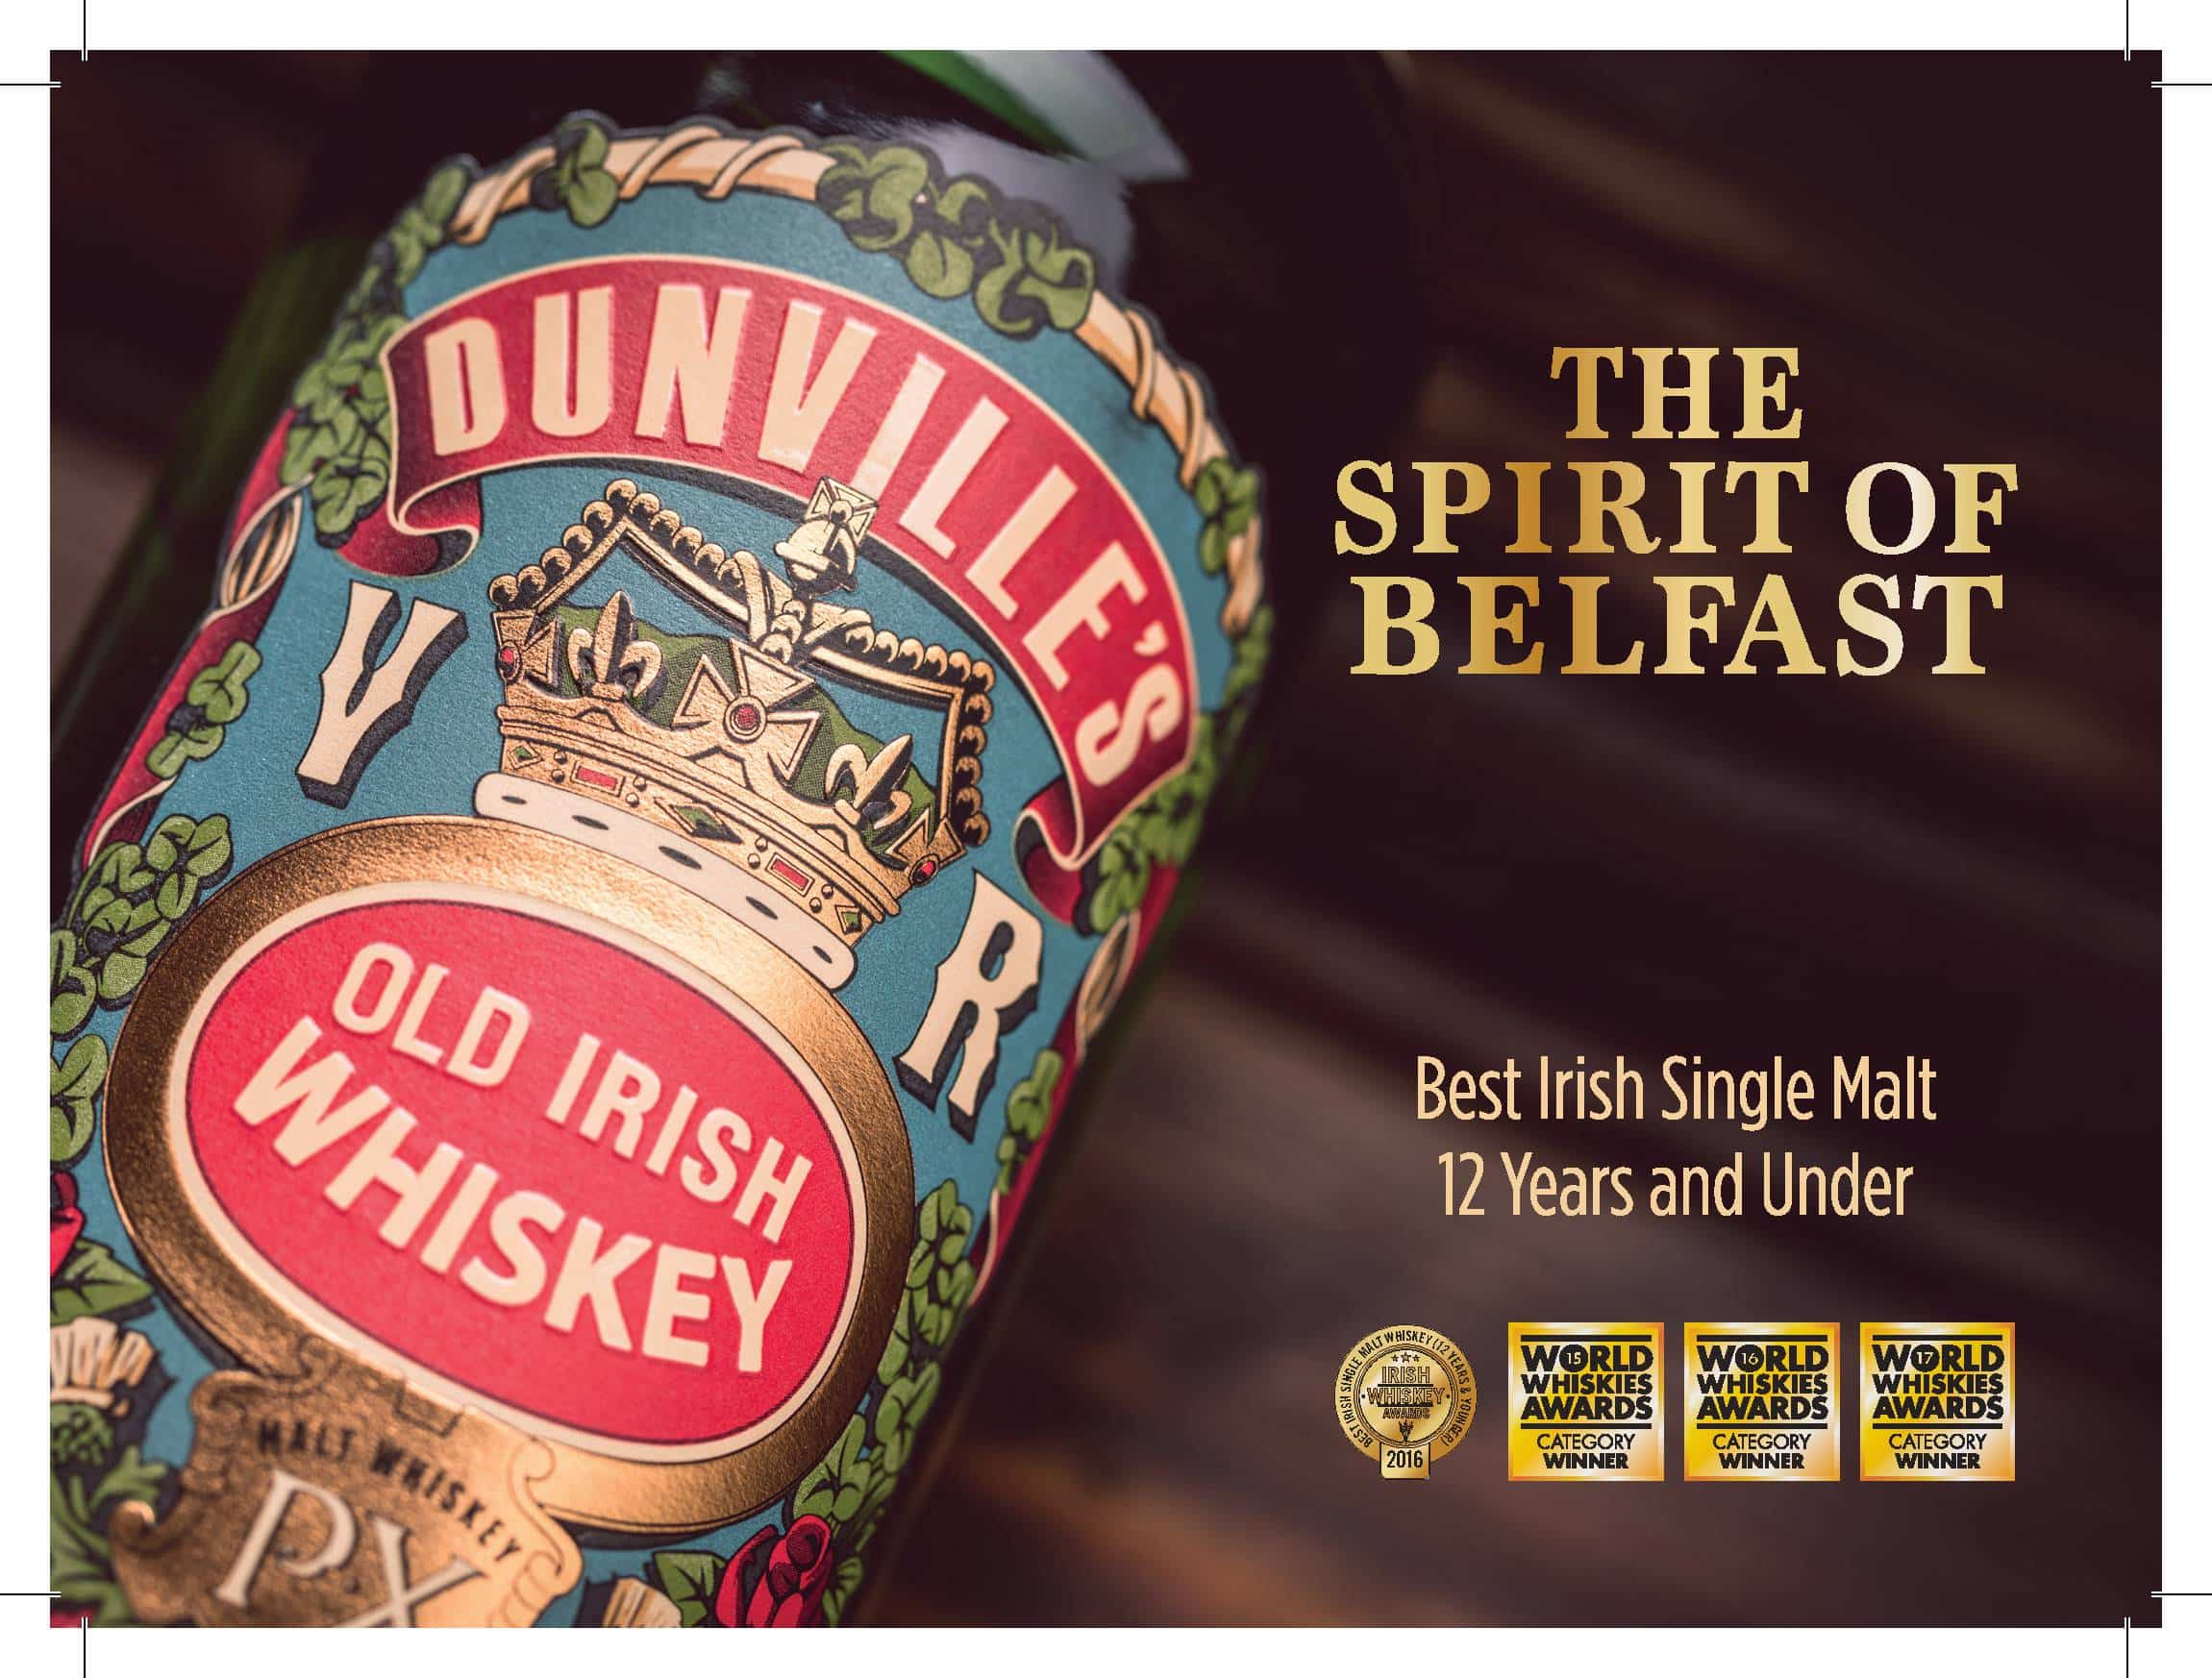 Dunville's Irish Whiskey image for company branding blog